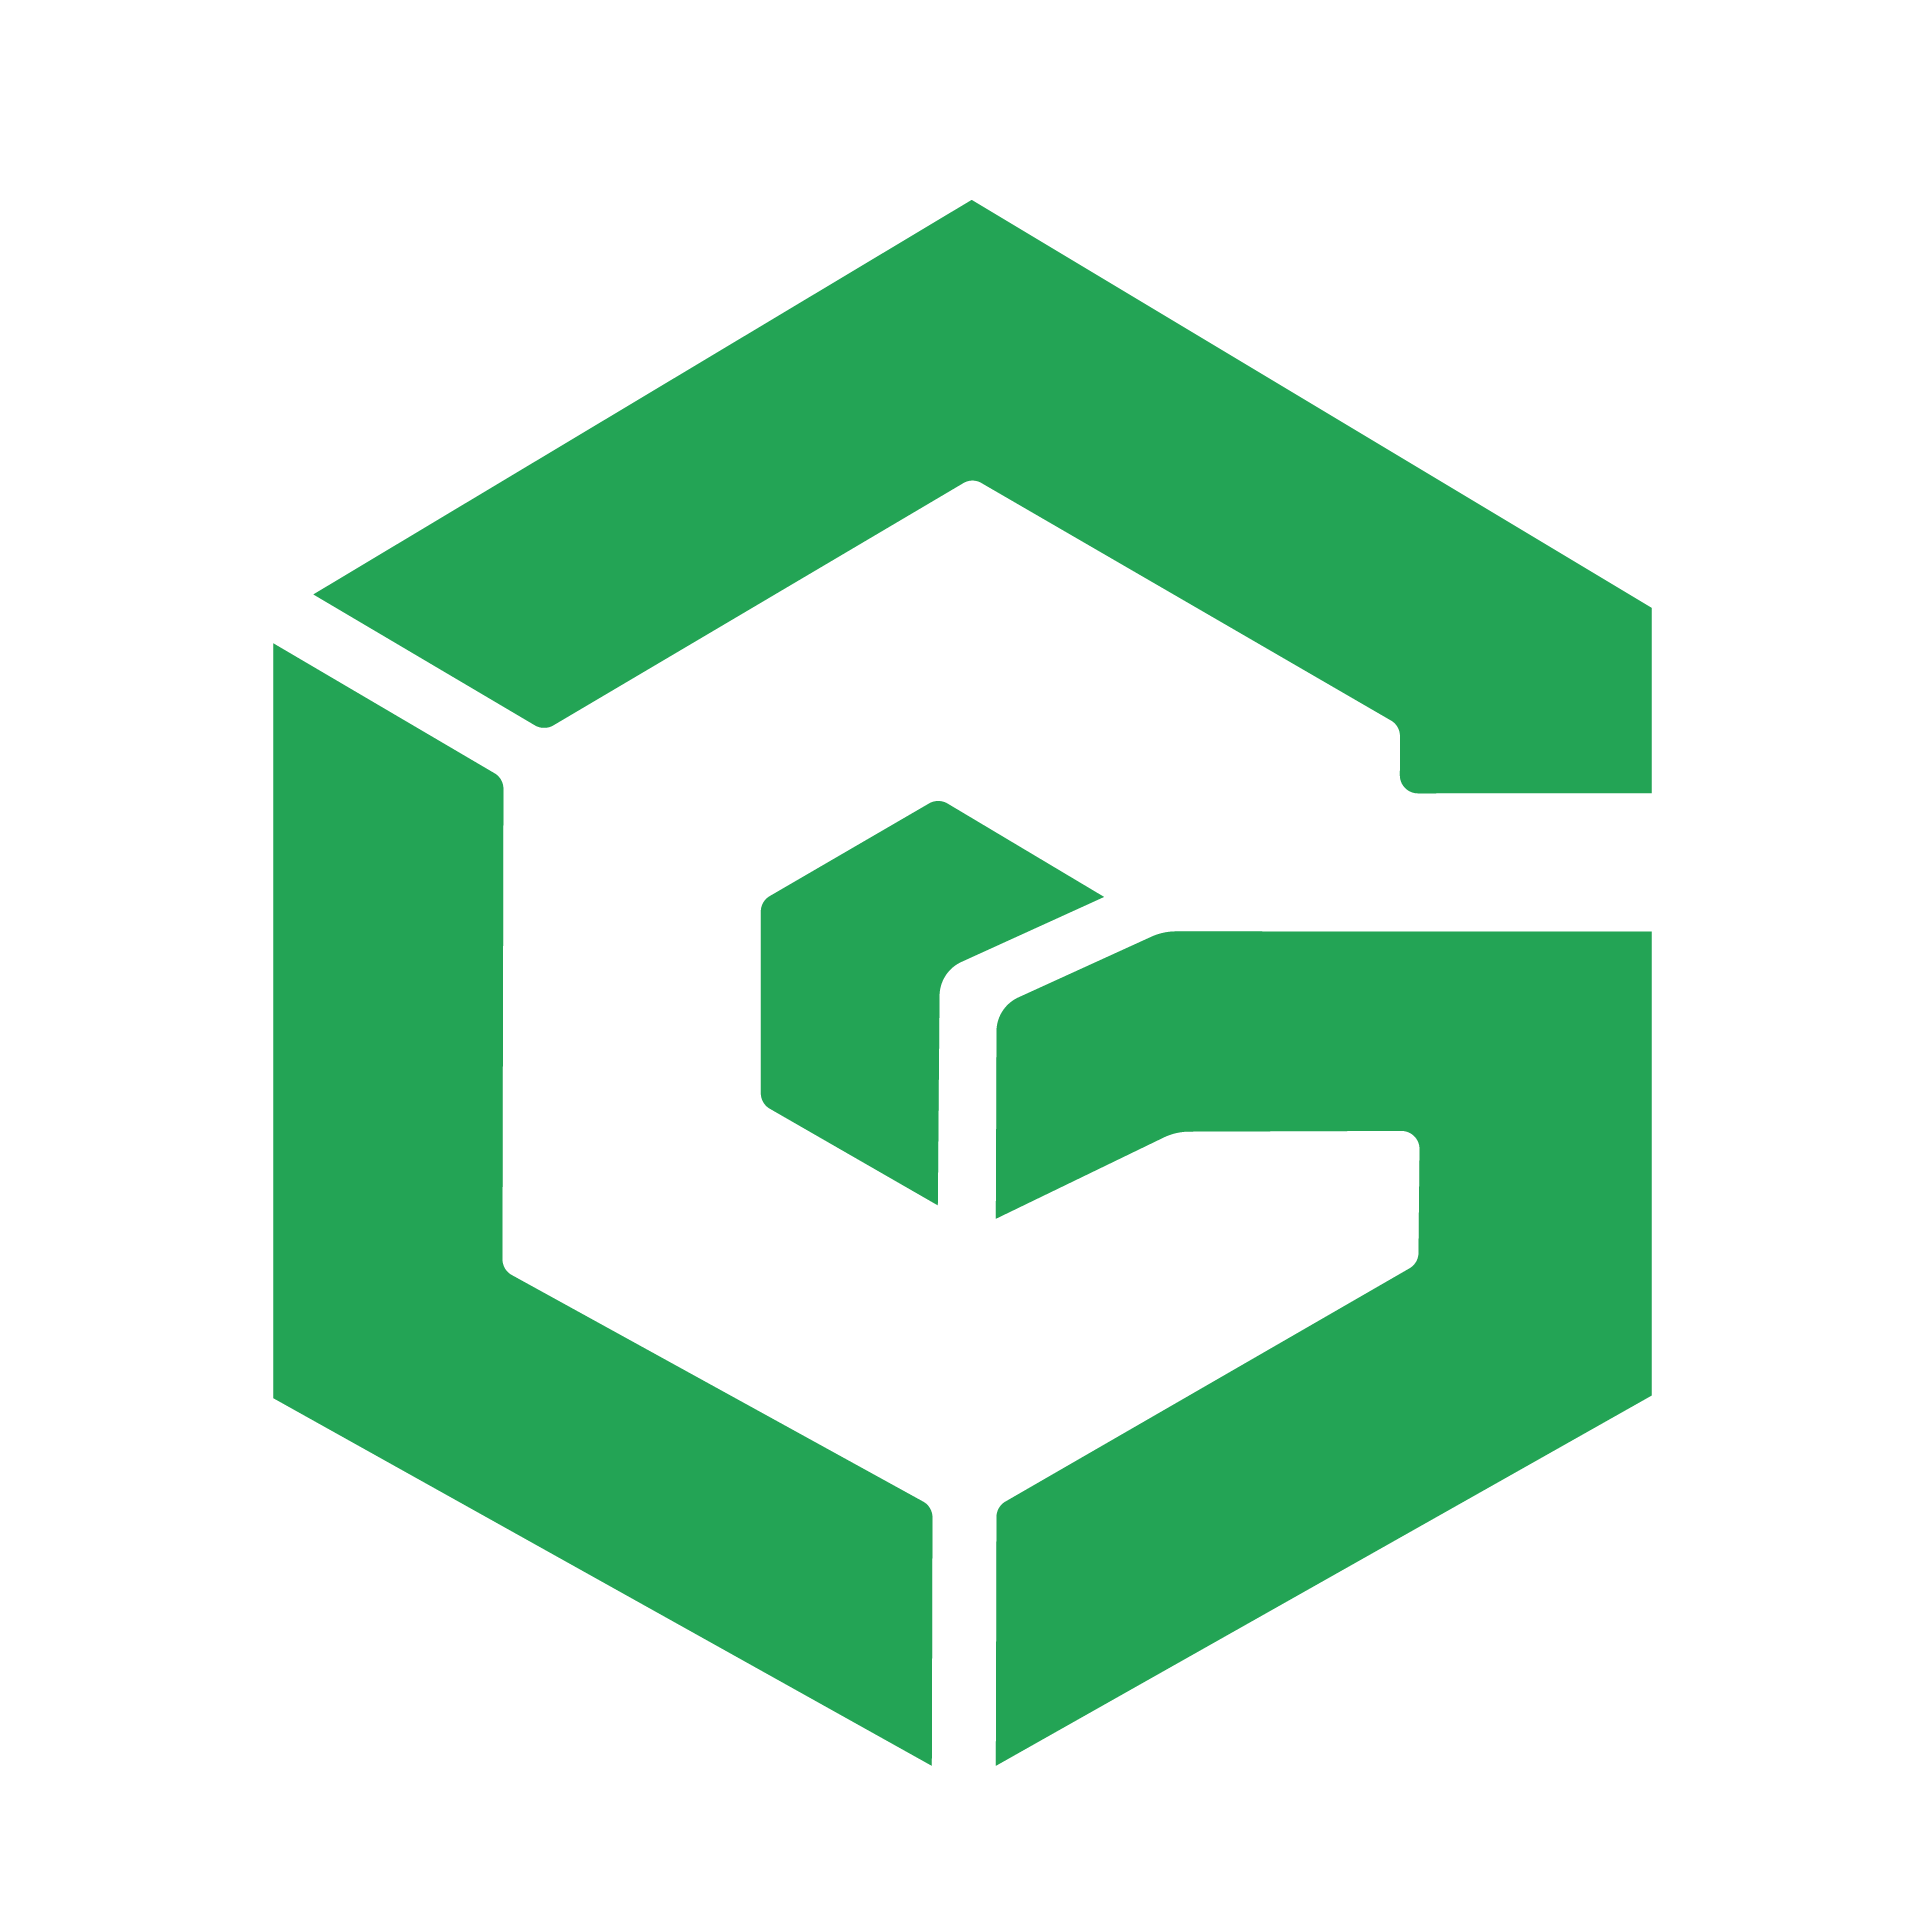 GTC_officiallogo